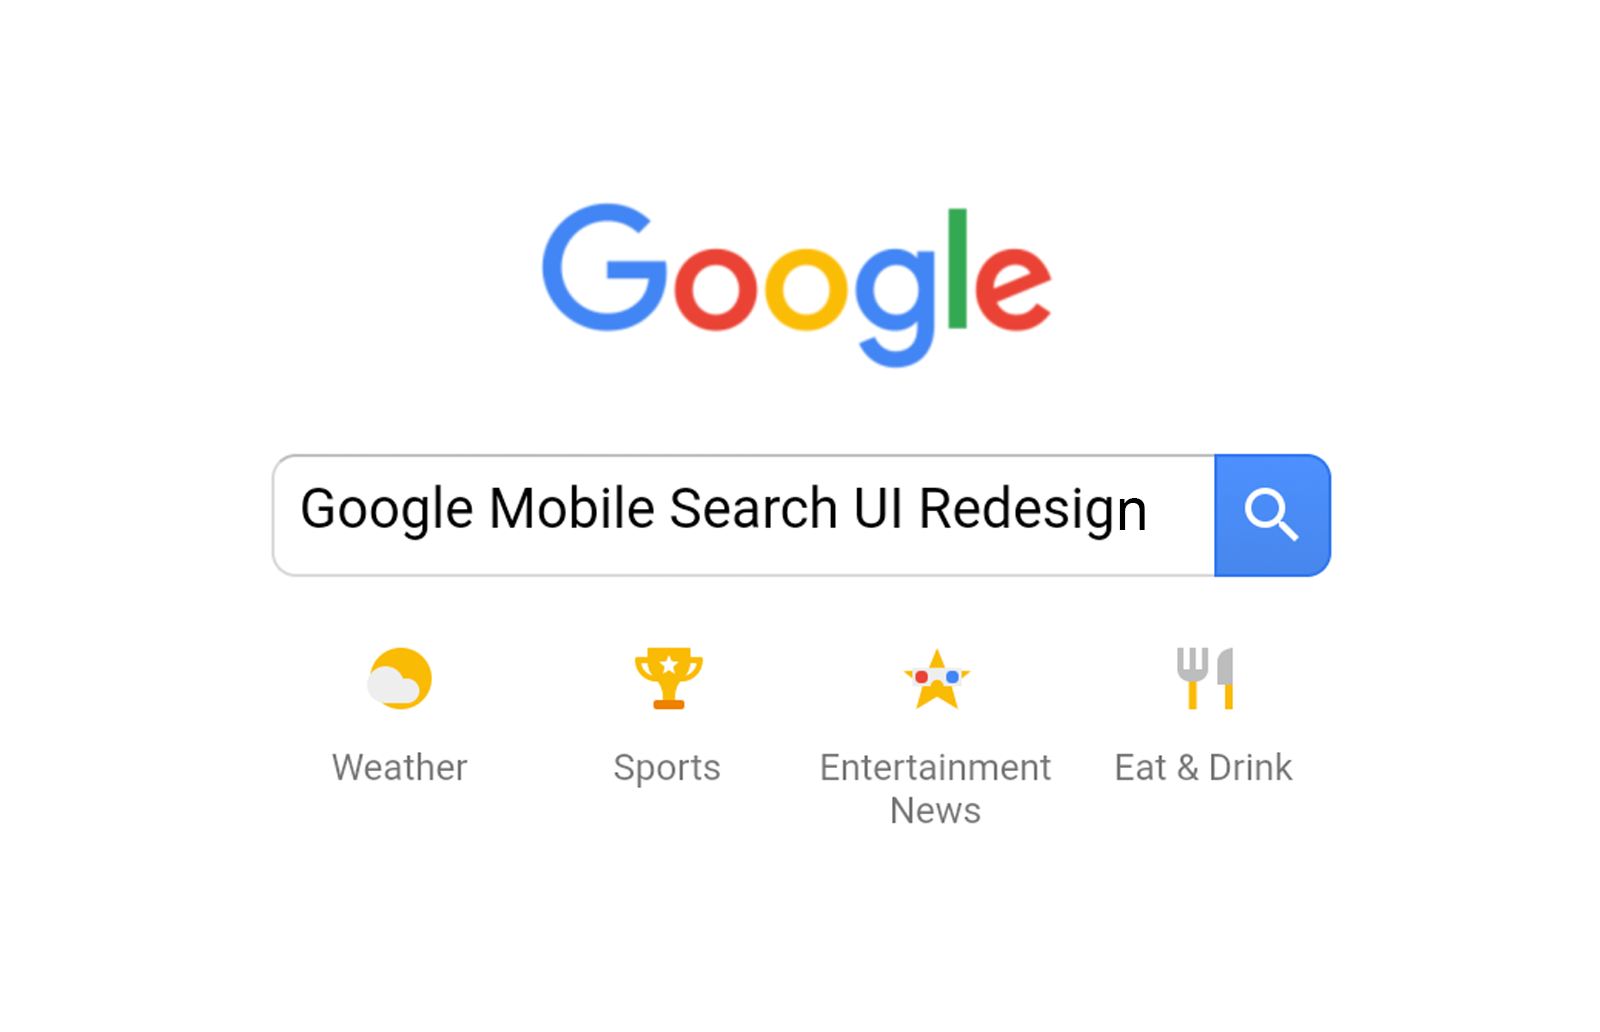 Google's Mobile Site Search UI Redesign